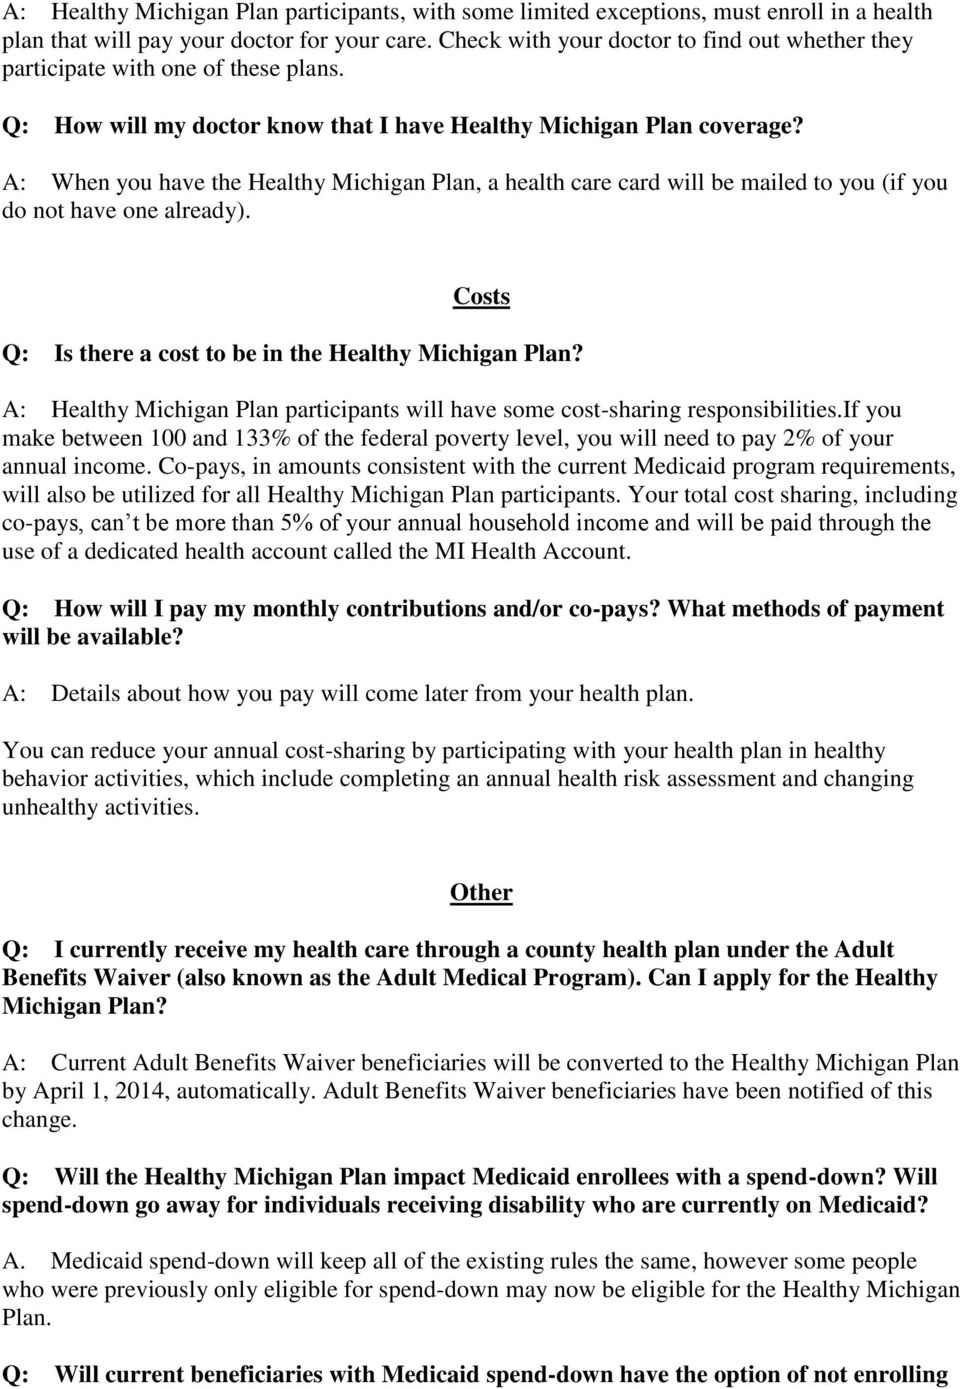 A: When you have the Healthy Michigan Plan, a health care card will be mailed to you (if you do not have one already). Costs Q: Is there a cost to be in the Healthy Michigan Plan?